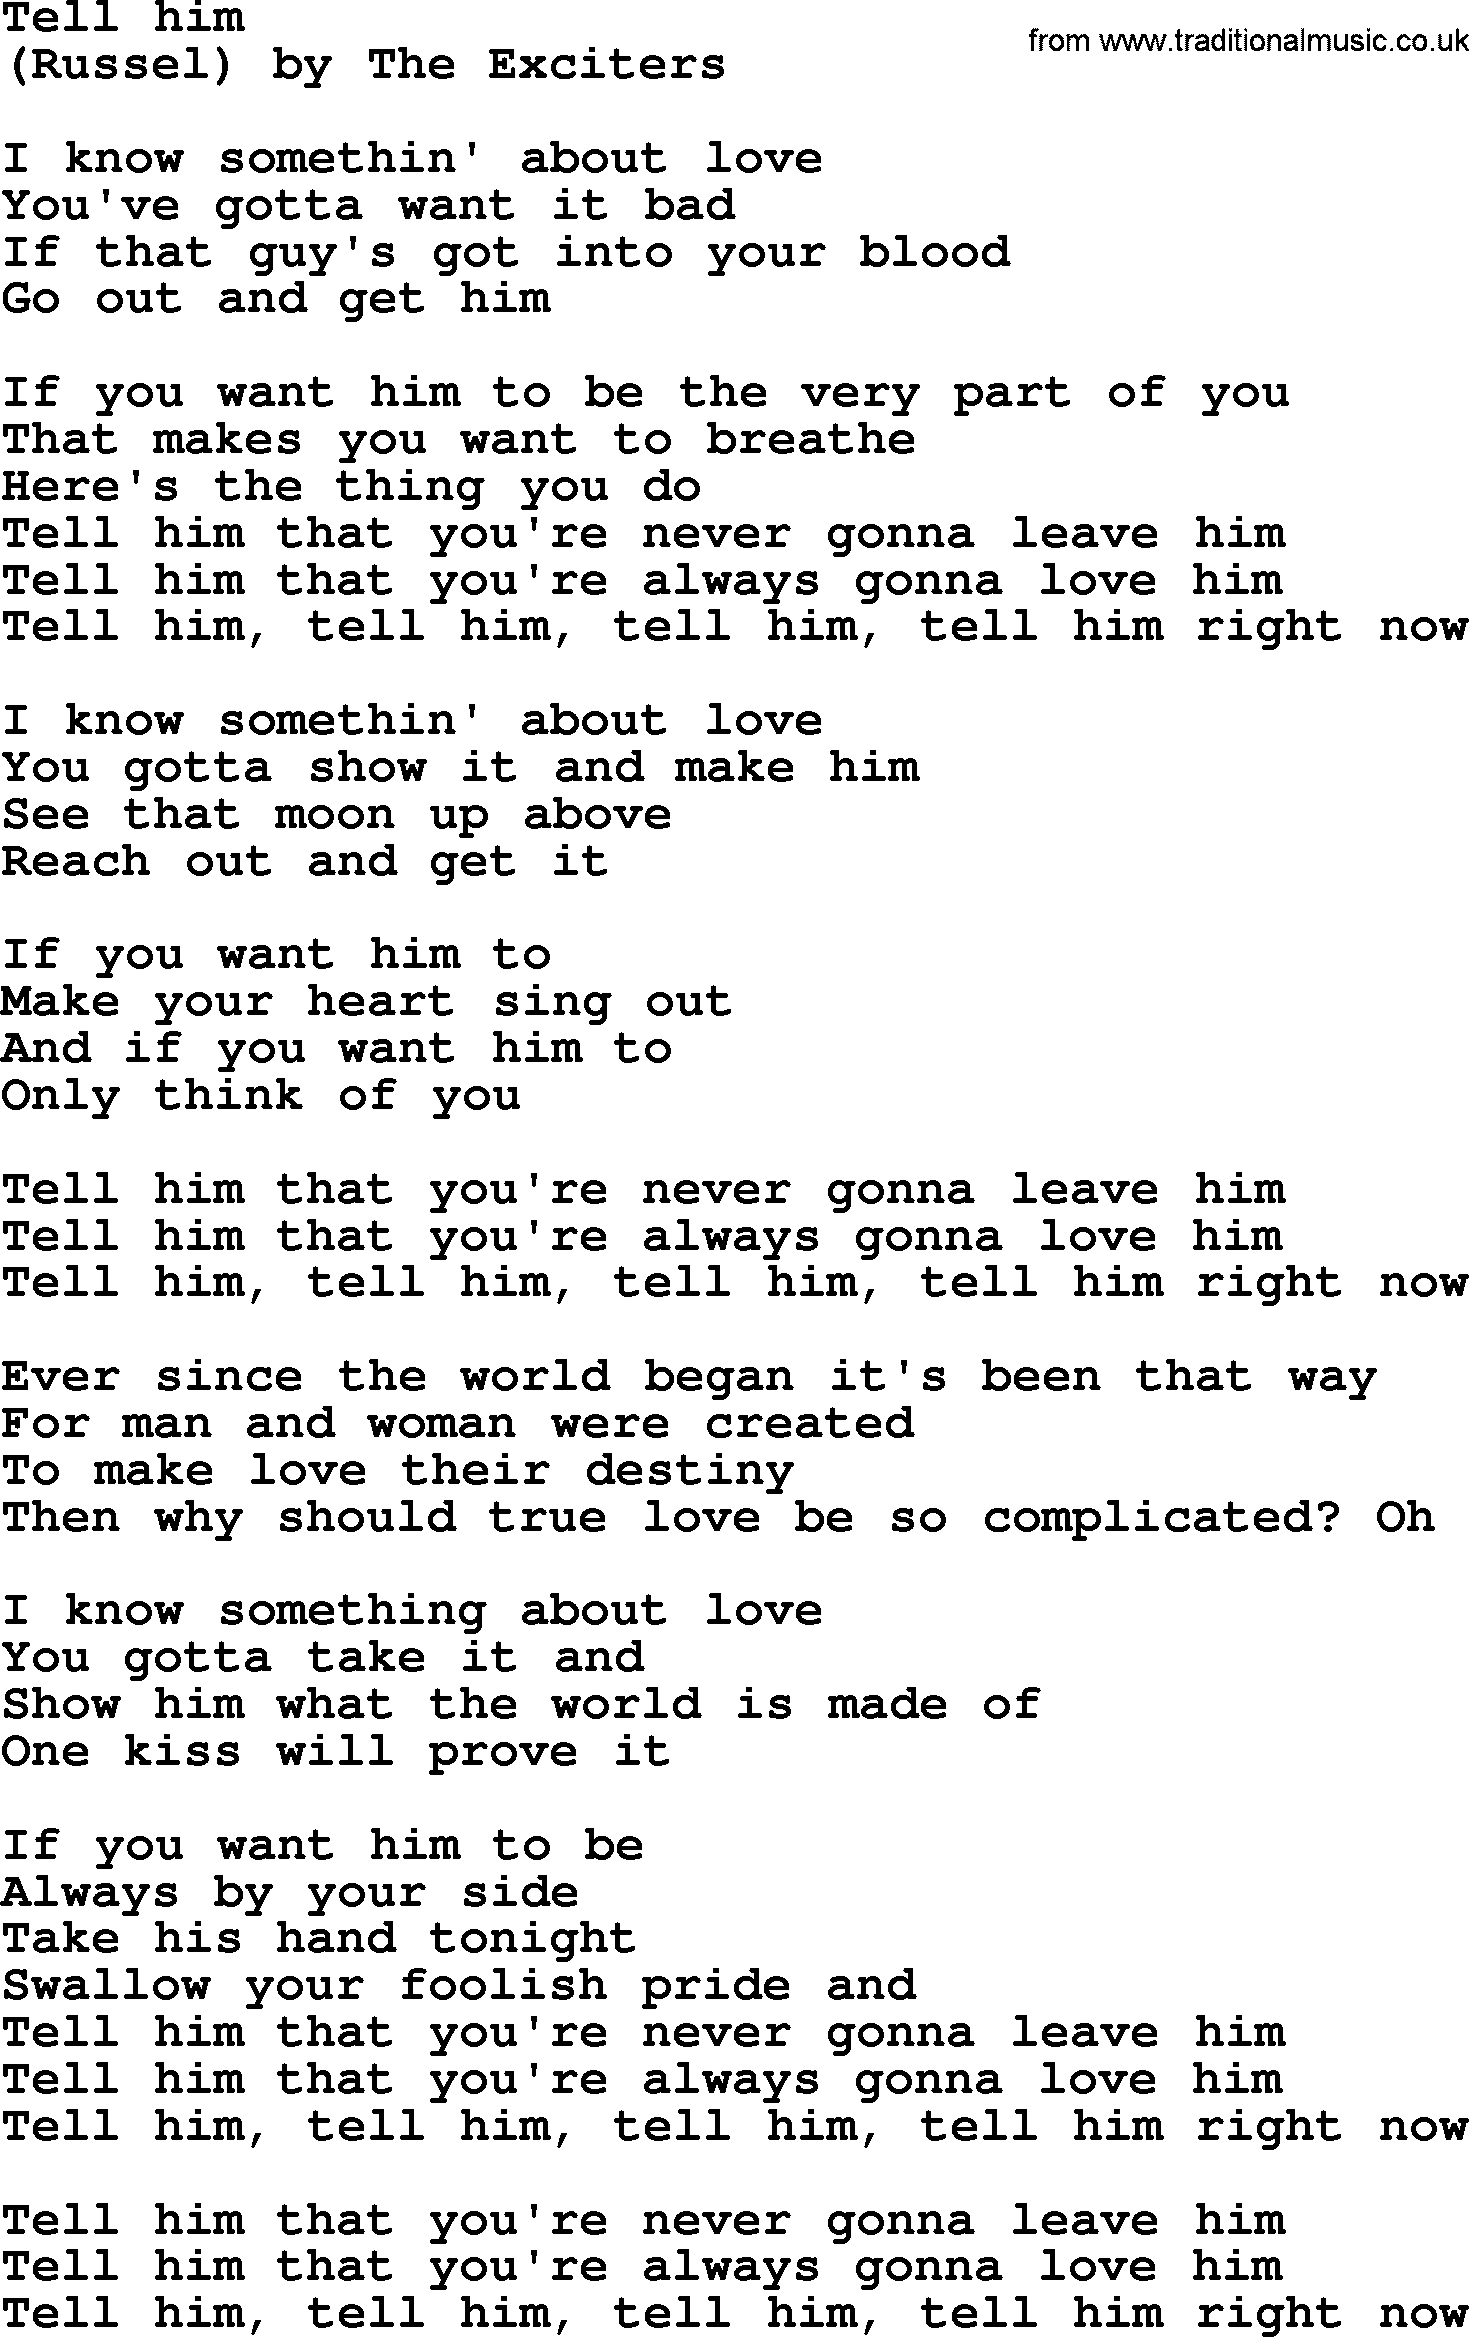 tell him that you love him lyrics